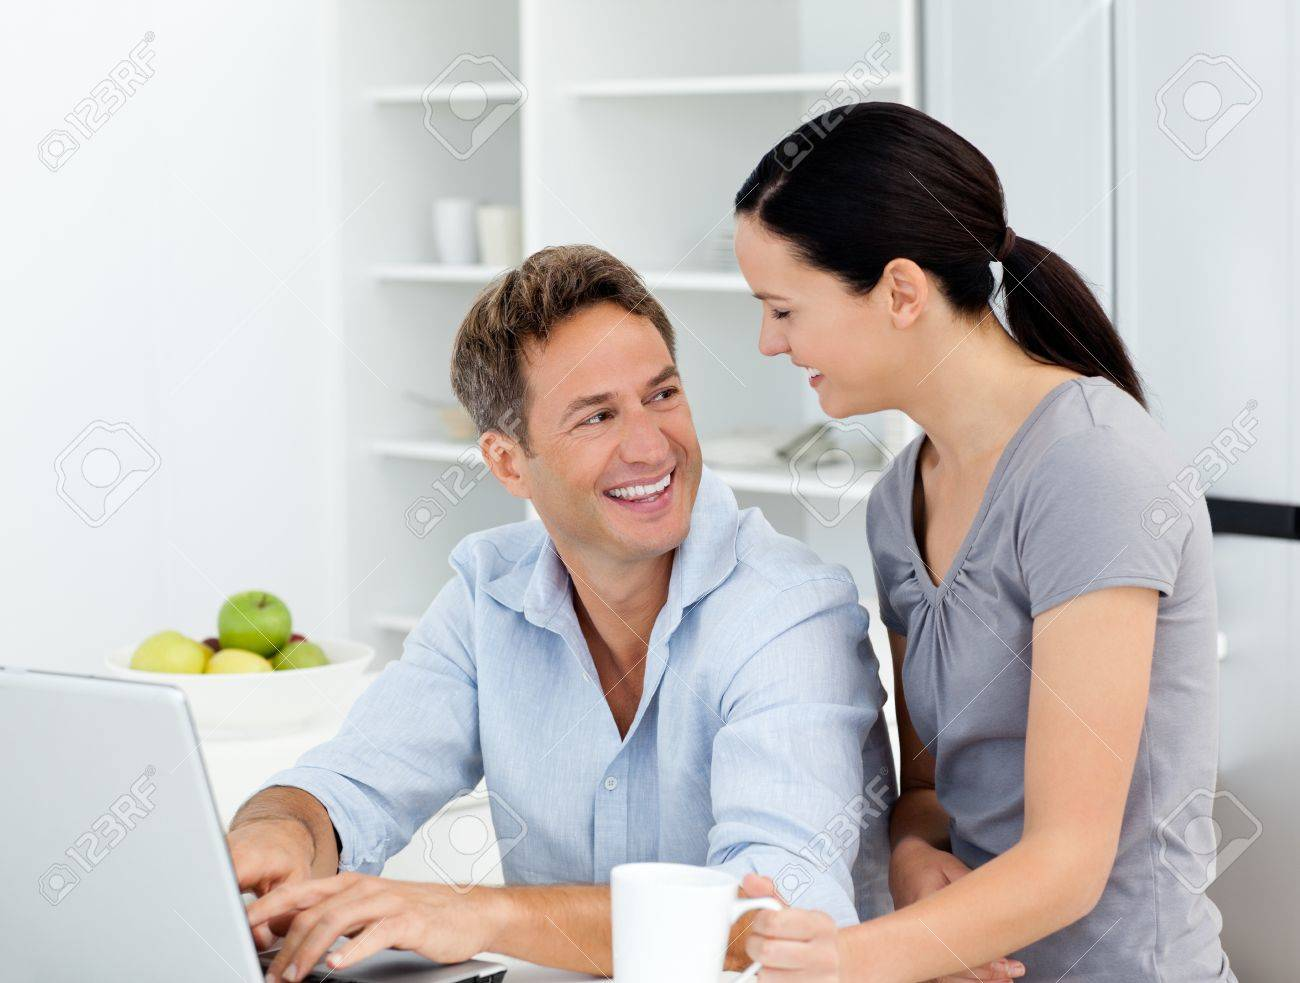 Happy couple working on their laptop in the kitchen Stock Photo - 10175491